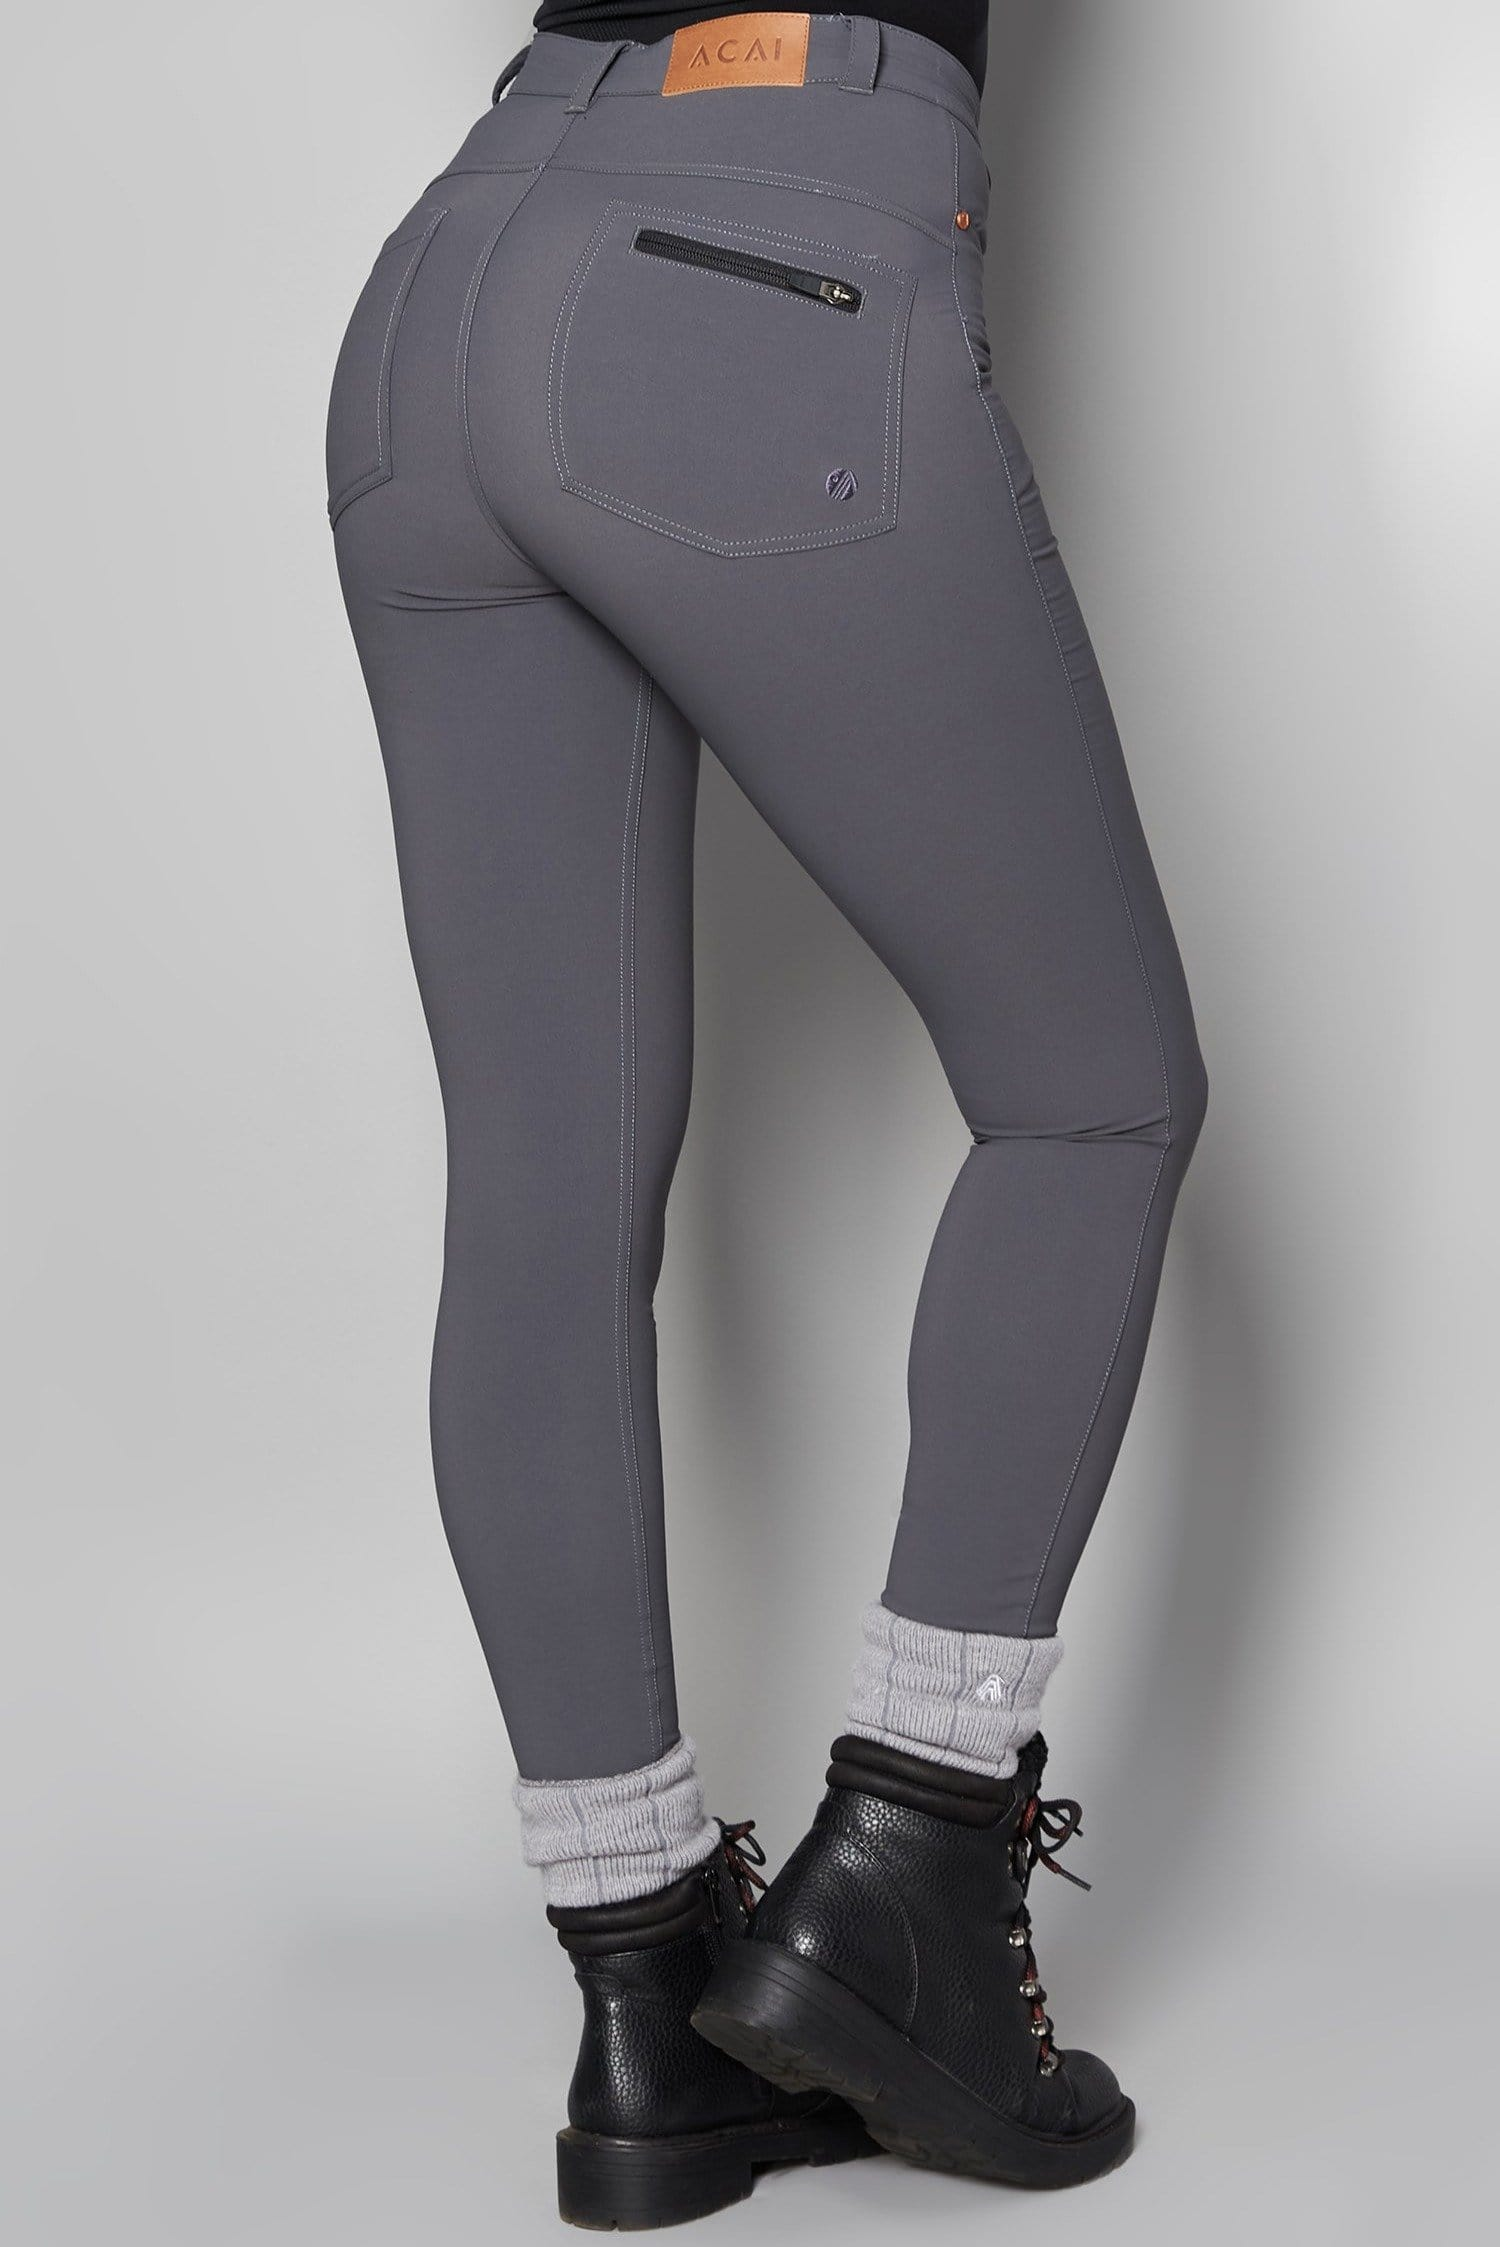 MAX Stretch Skinny Outdoor Trousers - Storm Grey - ACAI Activewear